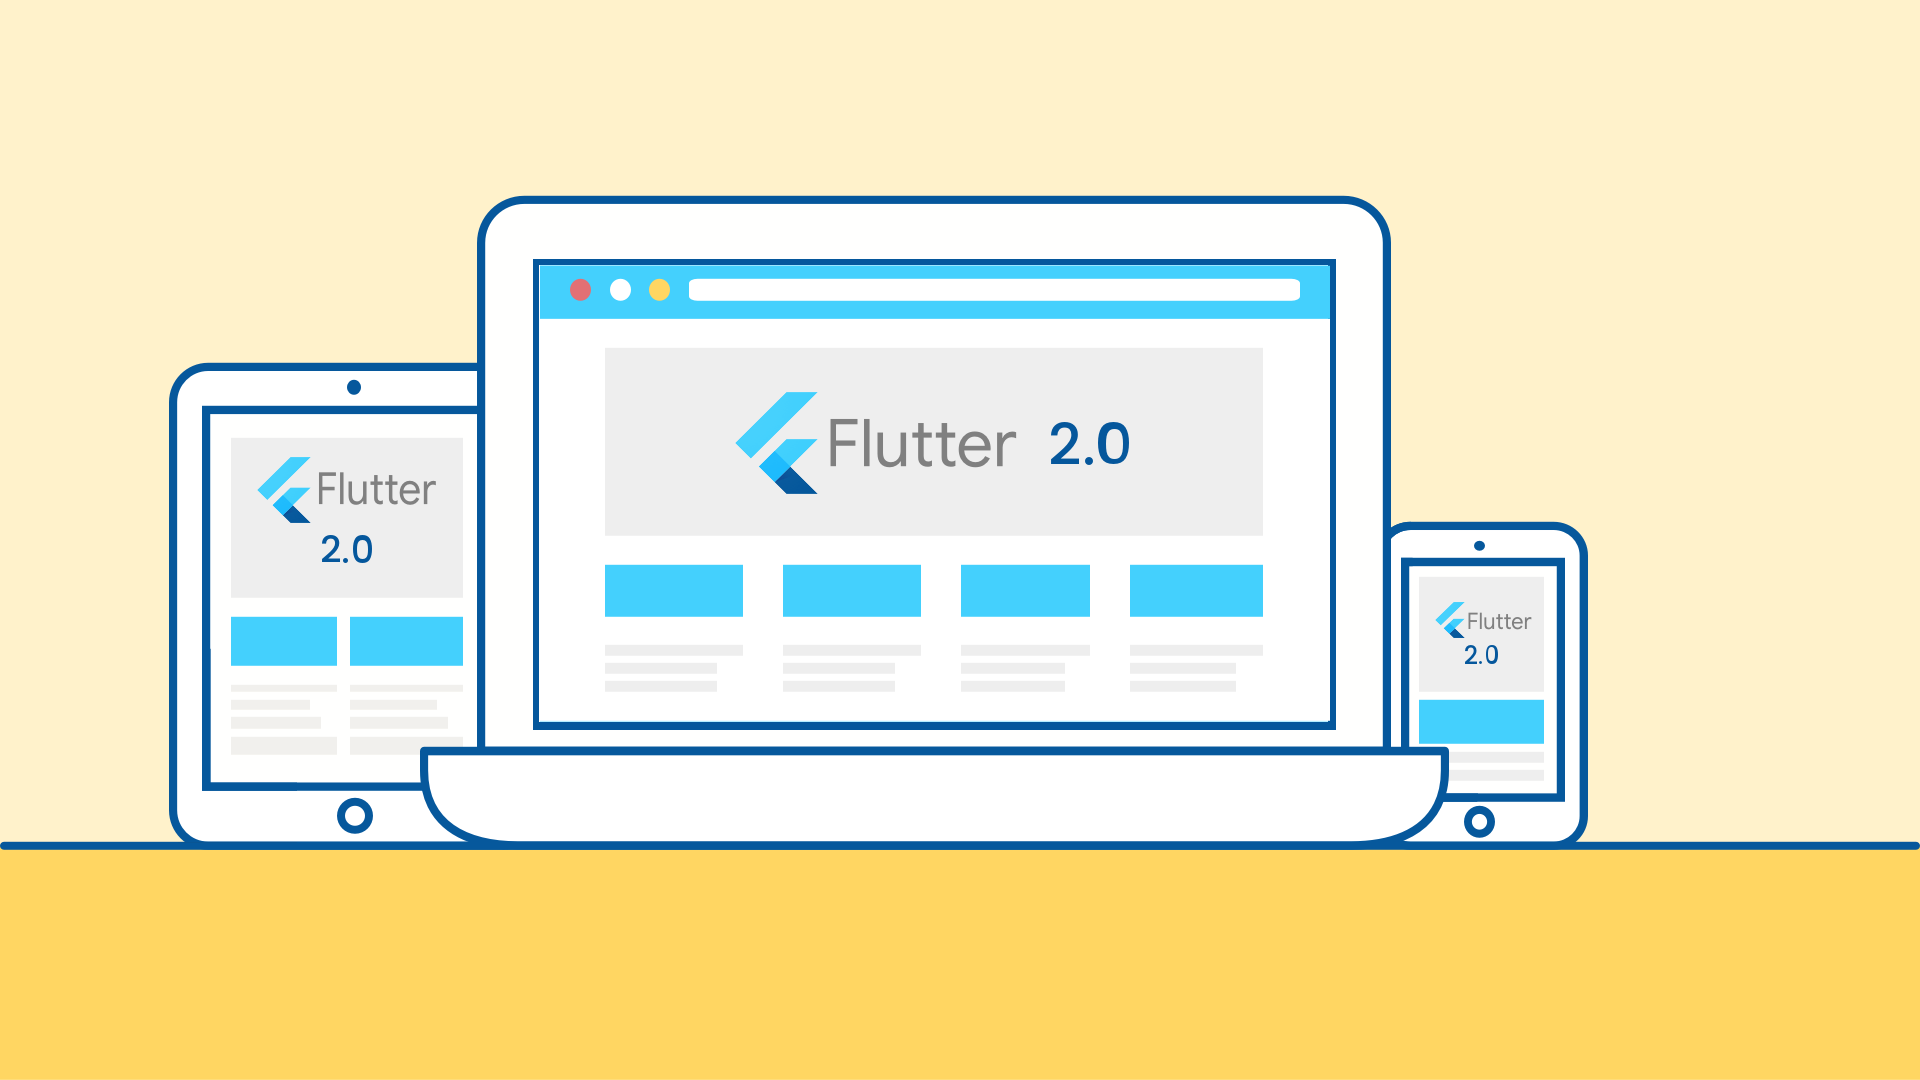 All you should know about Flutter 2.0